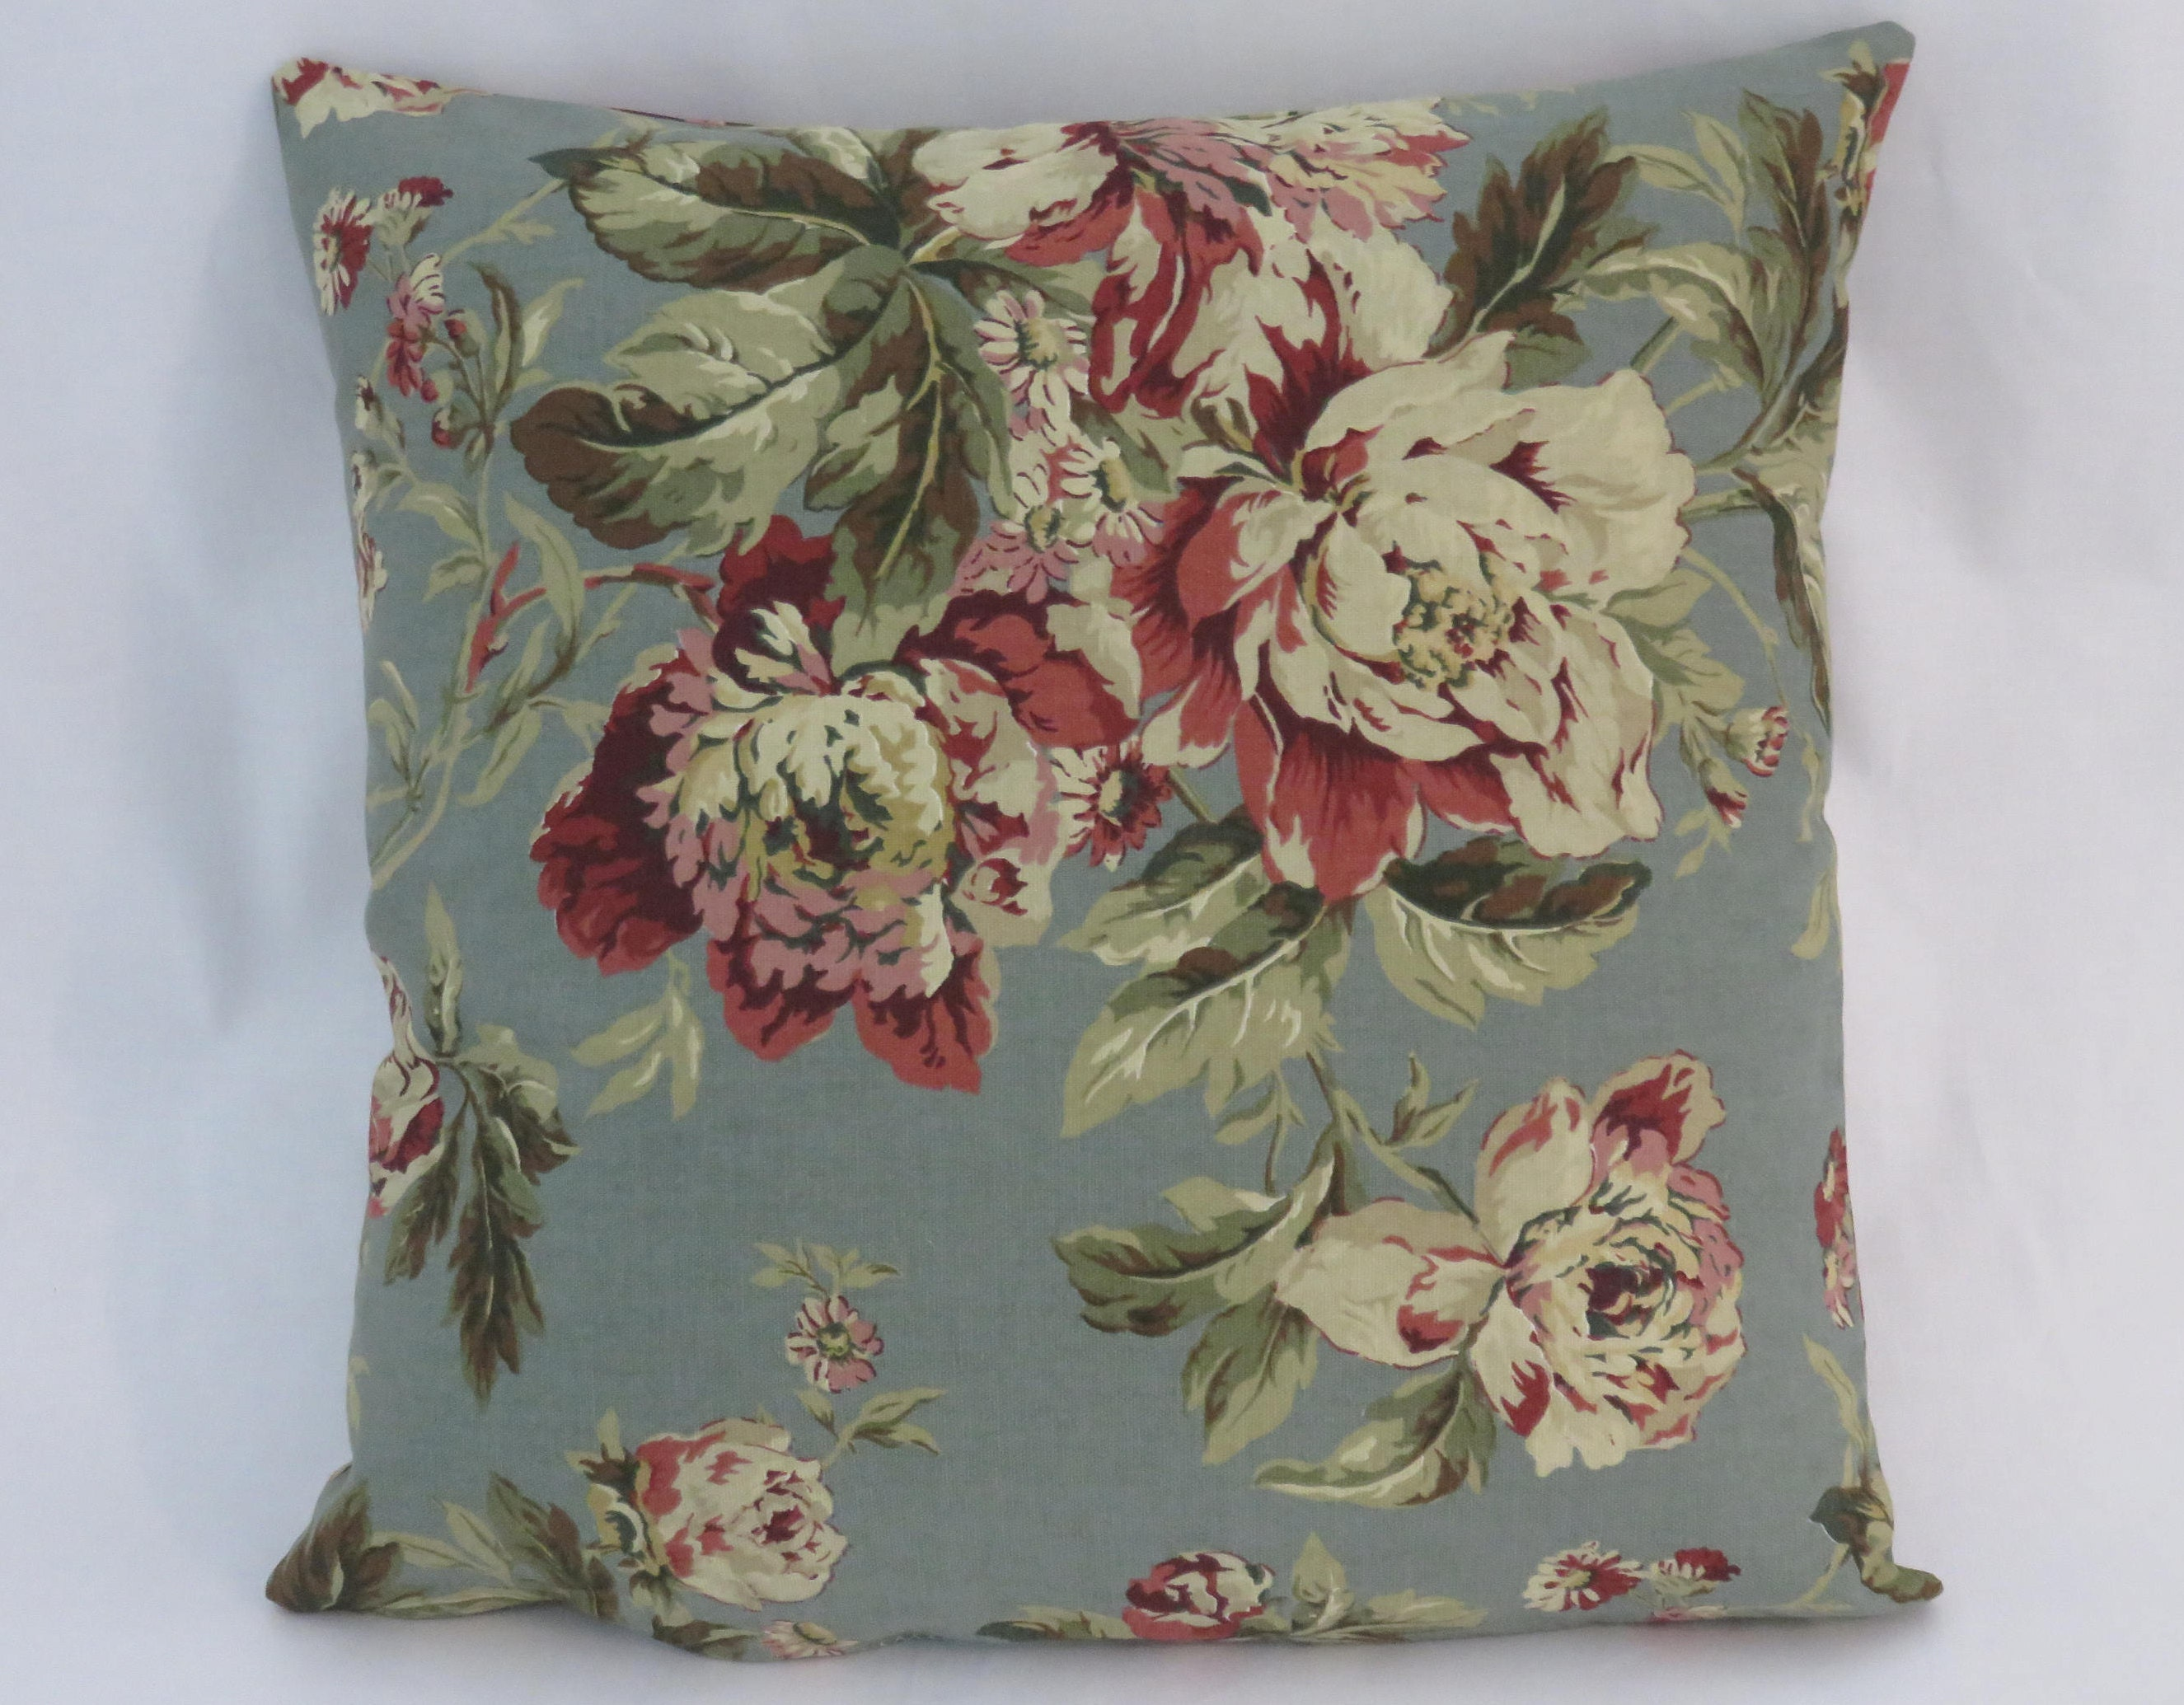 Teal And Maroon Floral Pillow Waverly Fleuretta In Bayberry